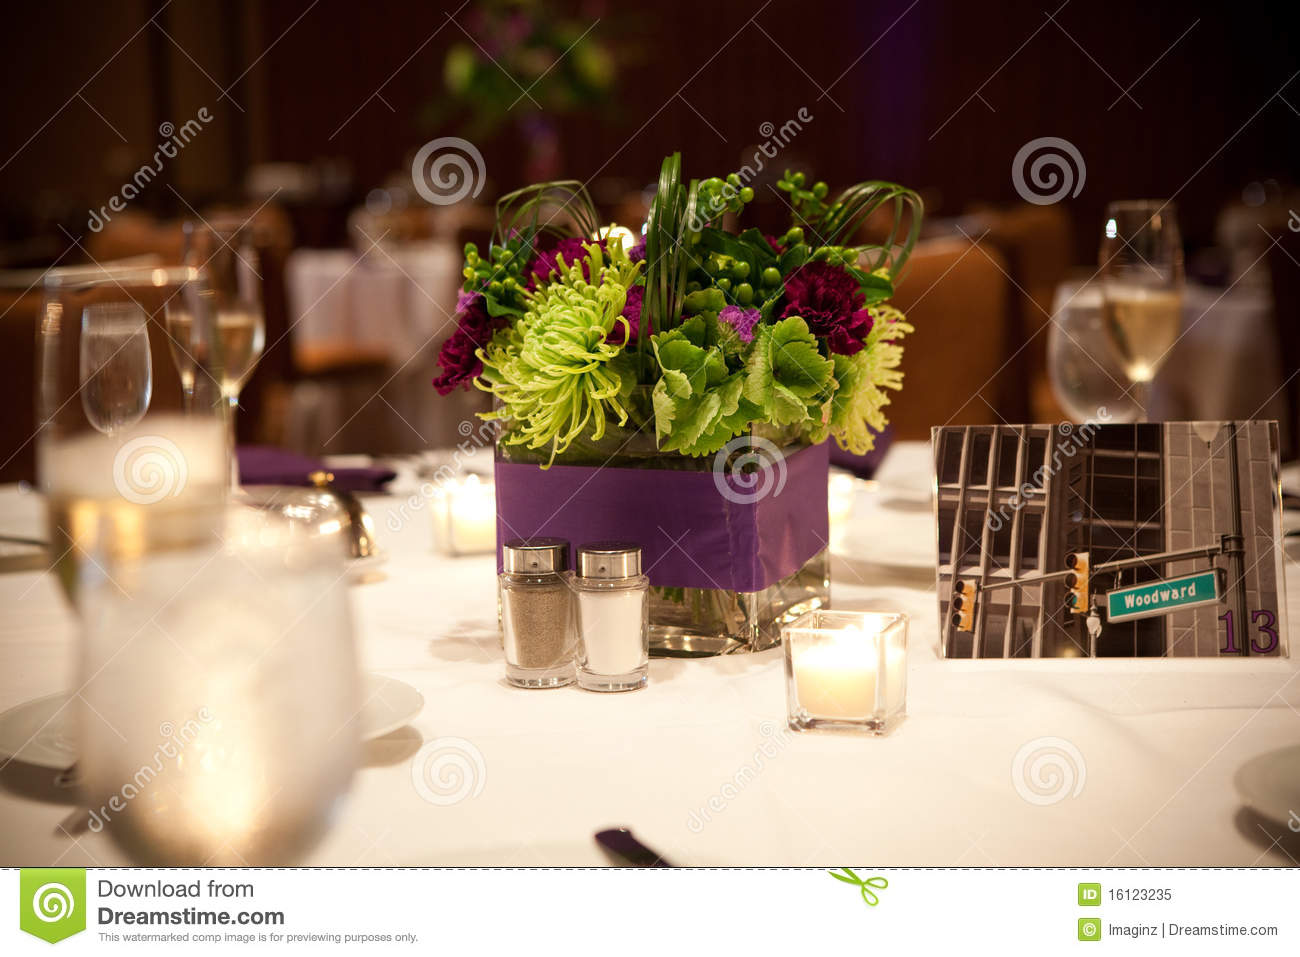 Flower banquet centerpiece royalty free stock photo